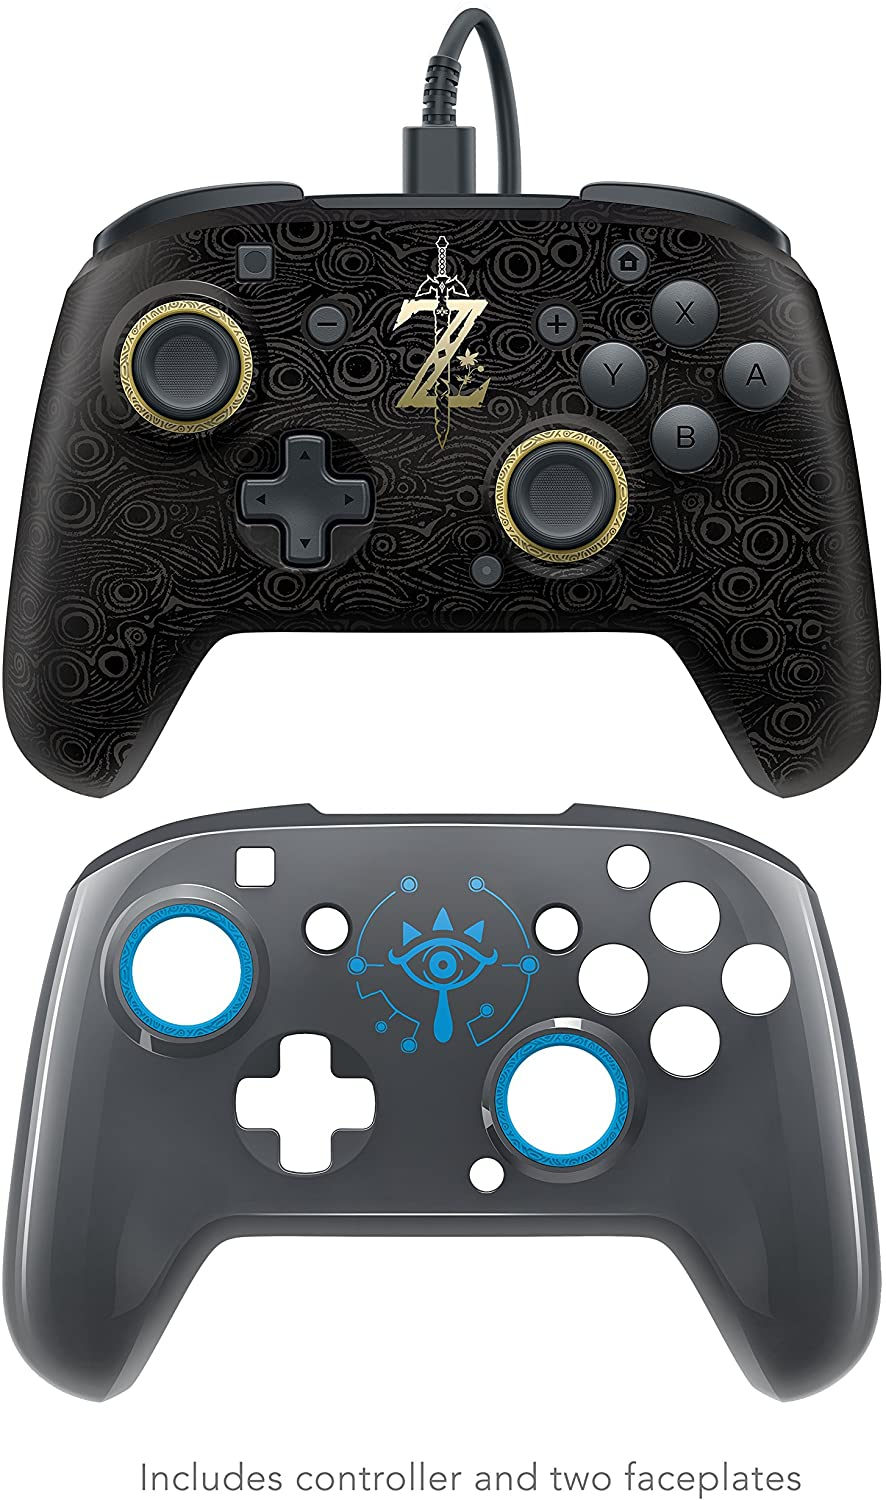 Contole PDP Faceoff Deluxe Wired Pro Controller - Breath of the Wild - Nintendo Switch - Envio Internacional